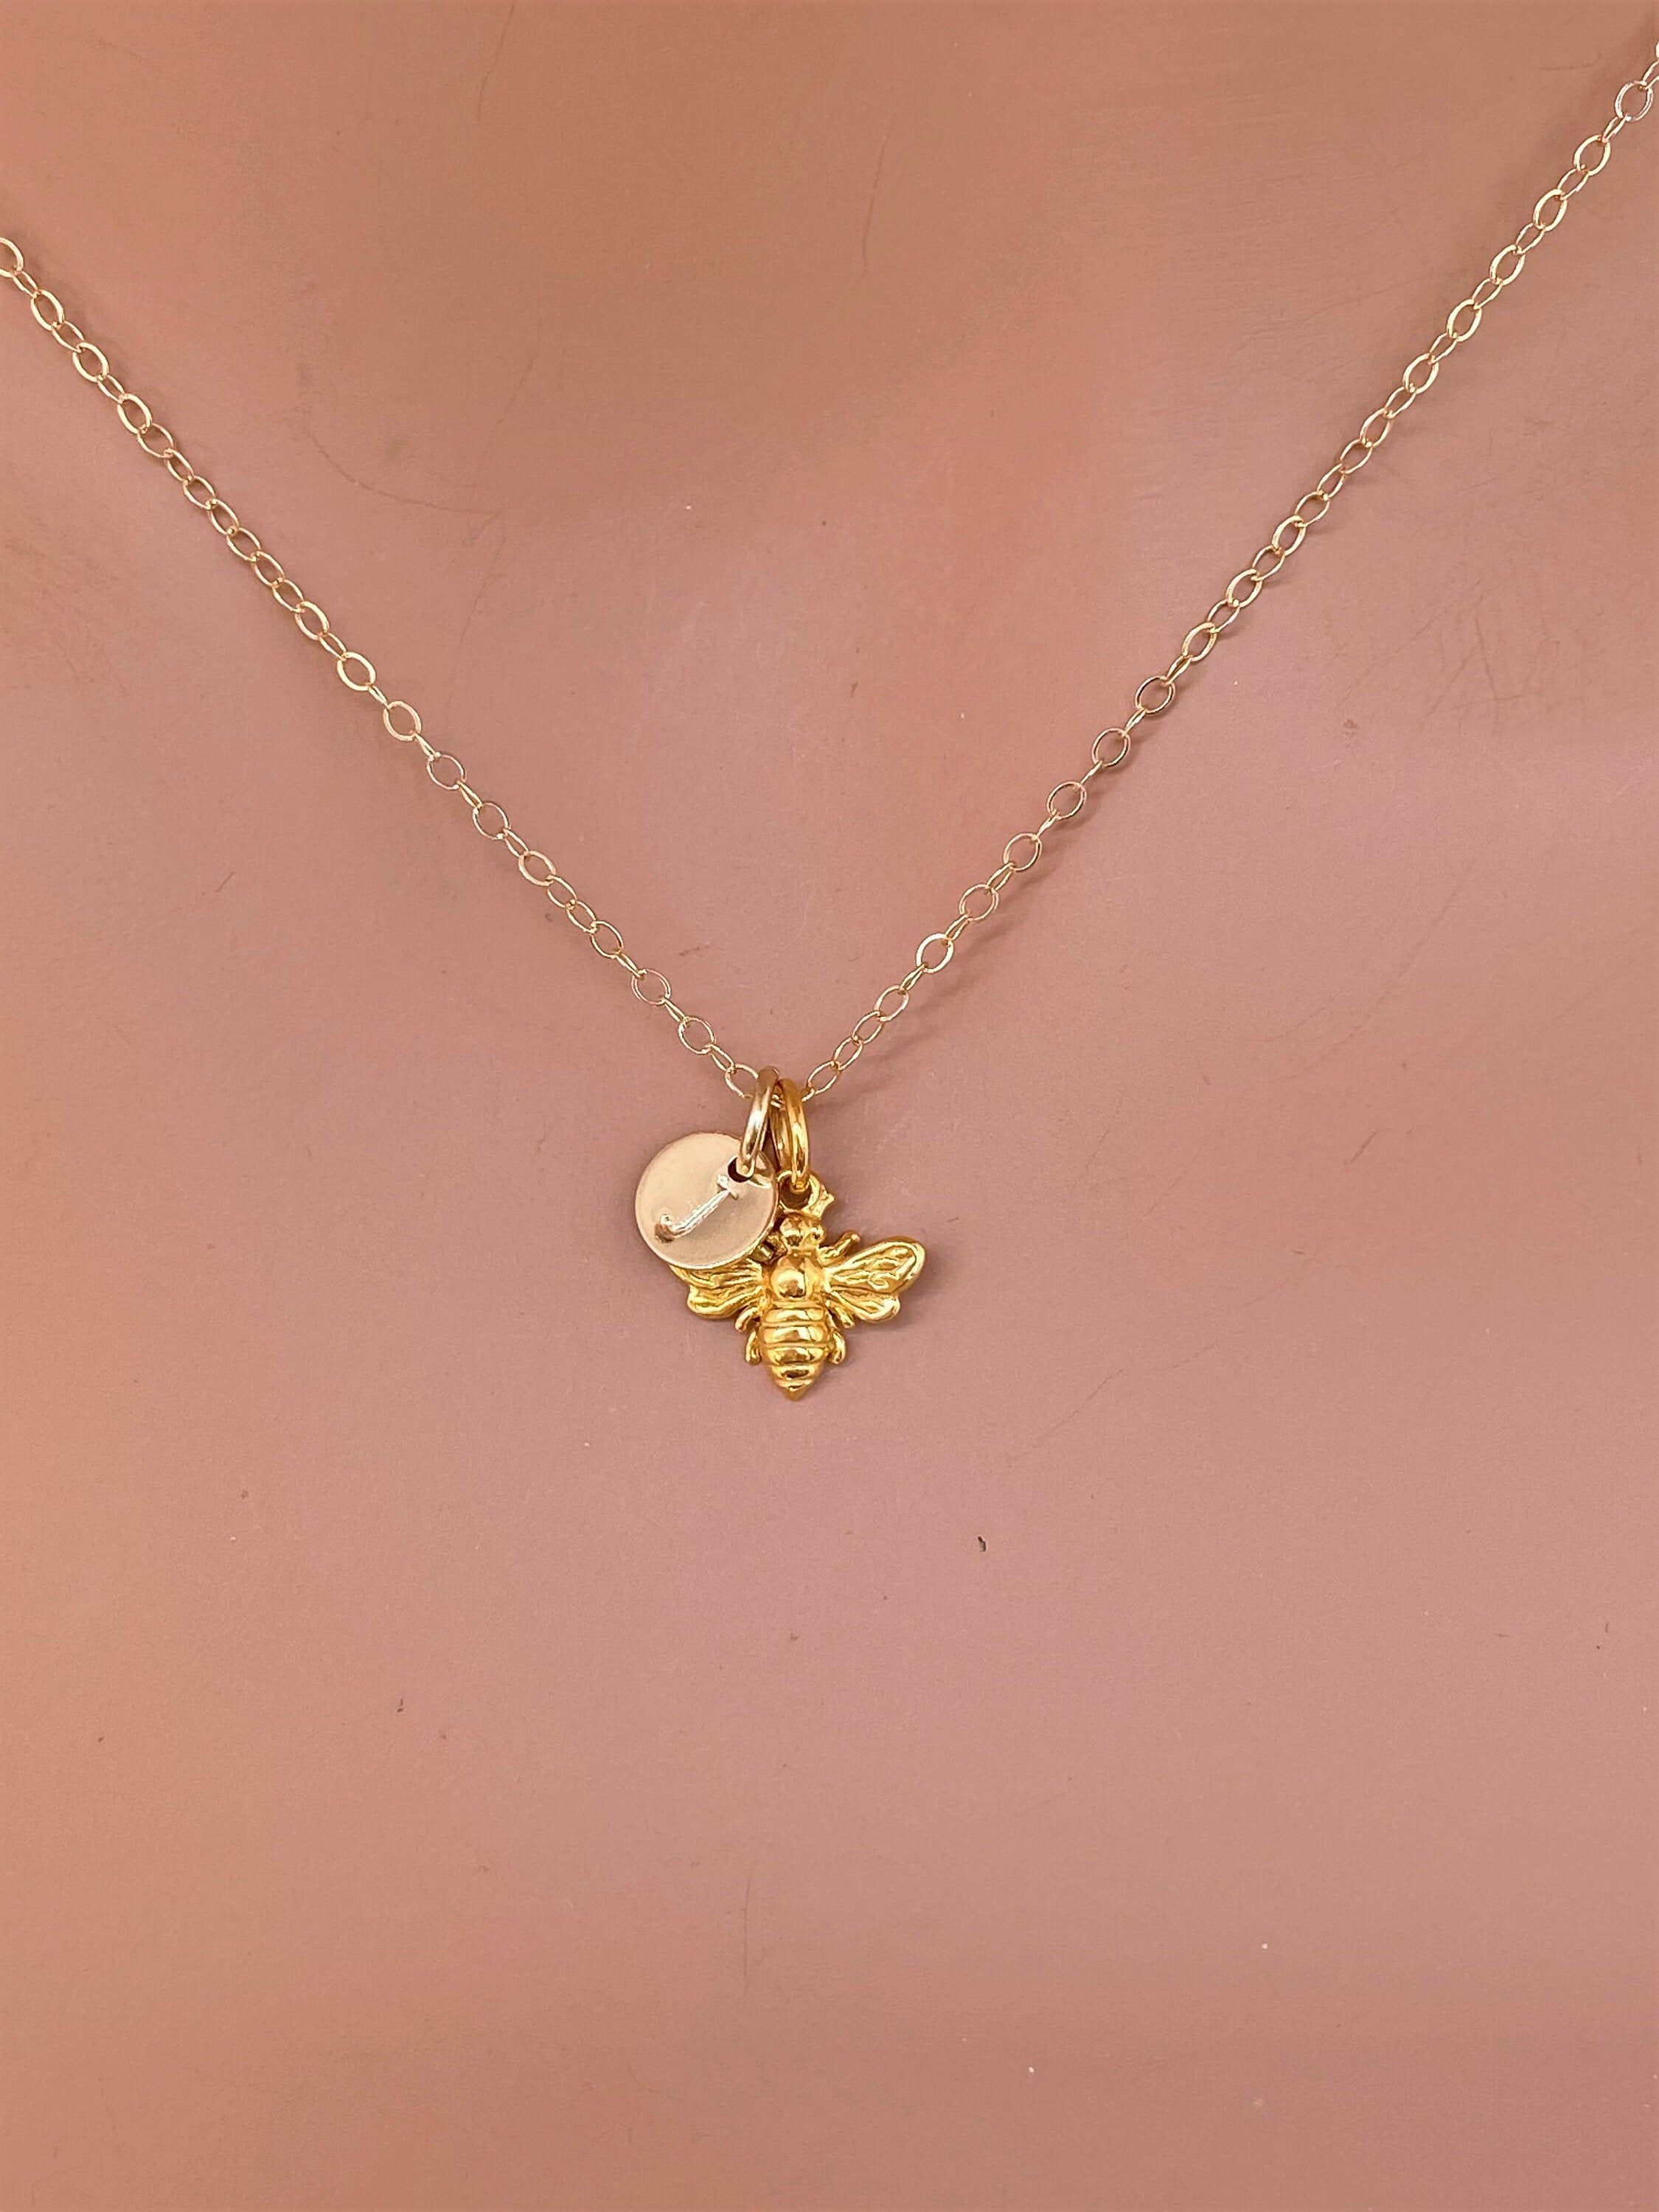 Gold Filled Honeybee Bumble Bee Charm Necklace Honey Bee Necklace